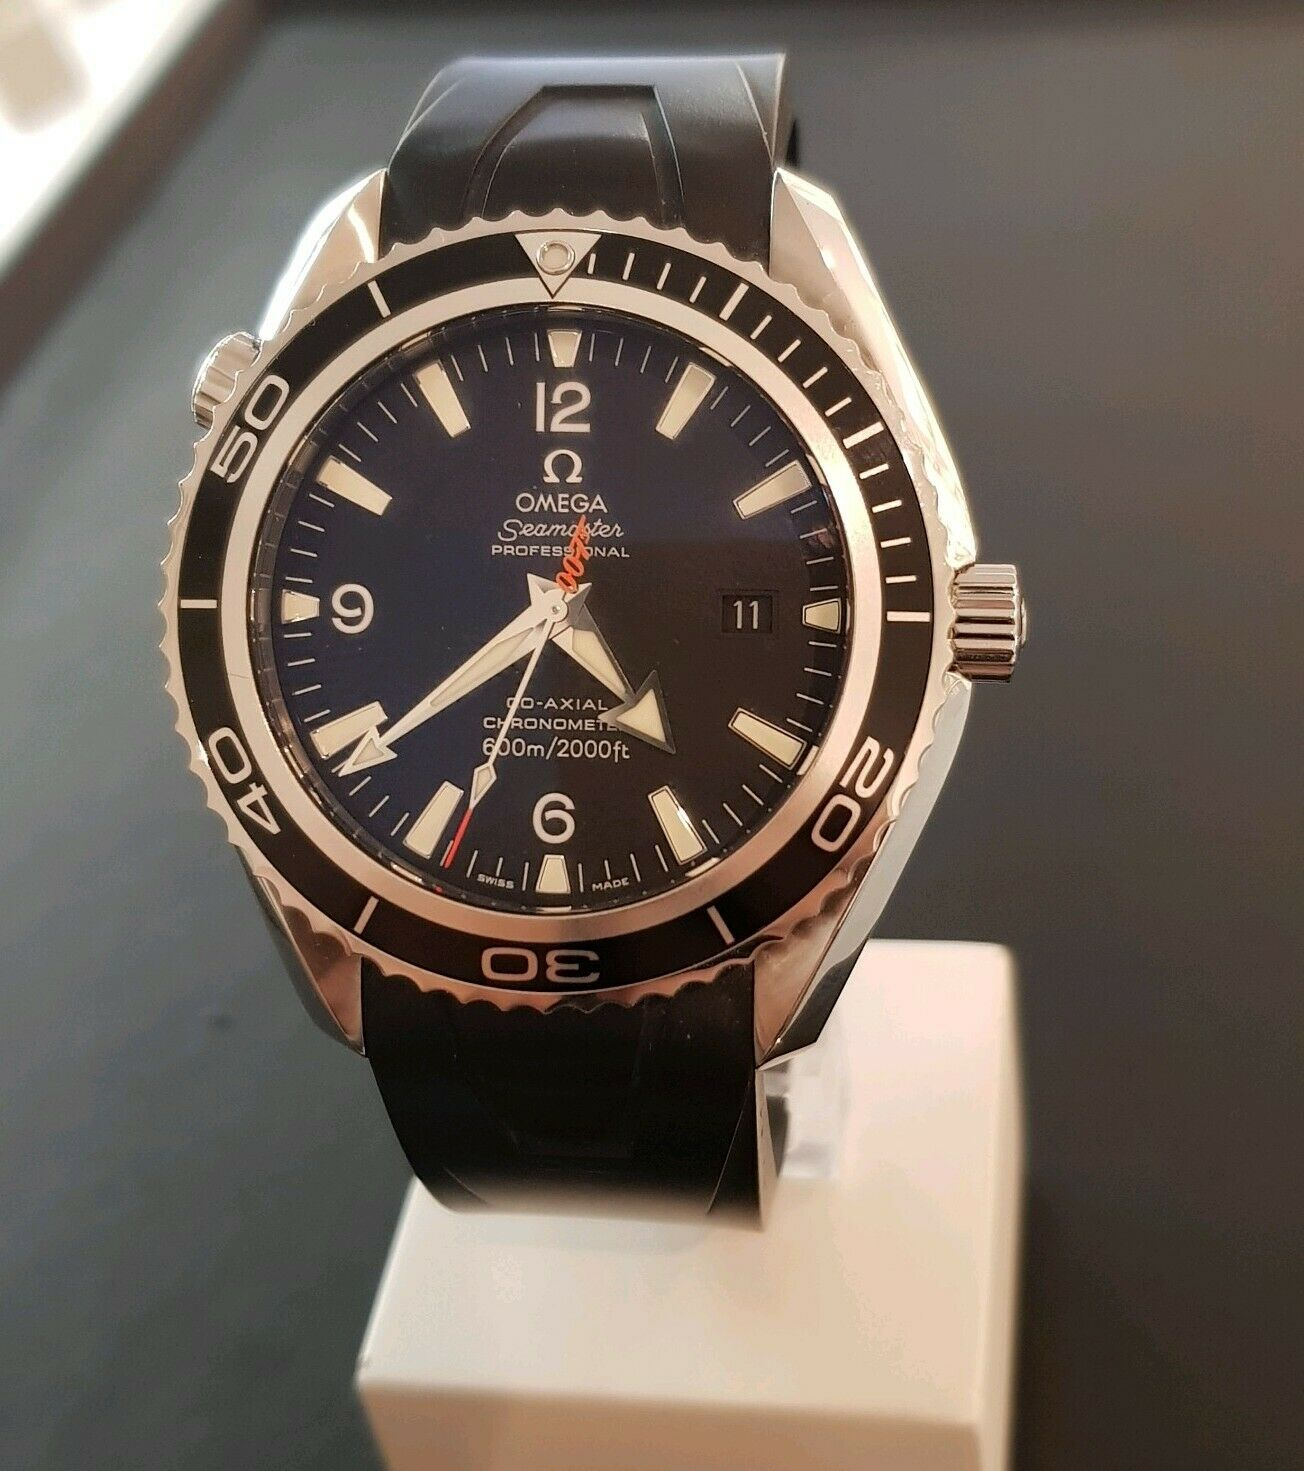 Bond, James Bond: Omega Seamaster Planet Ocean (Casino Royale)